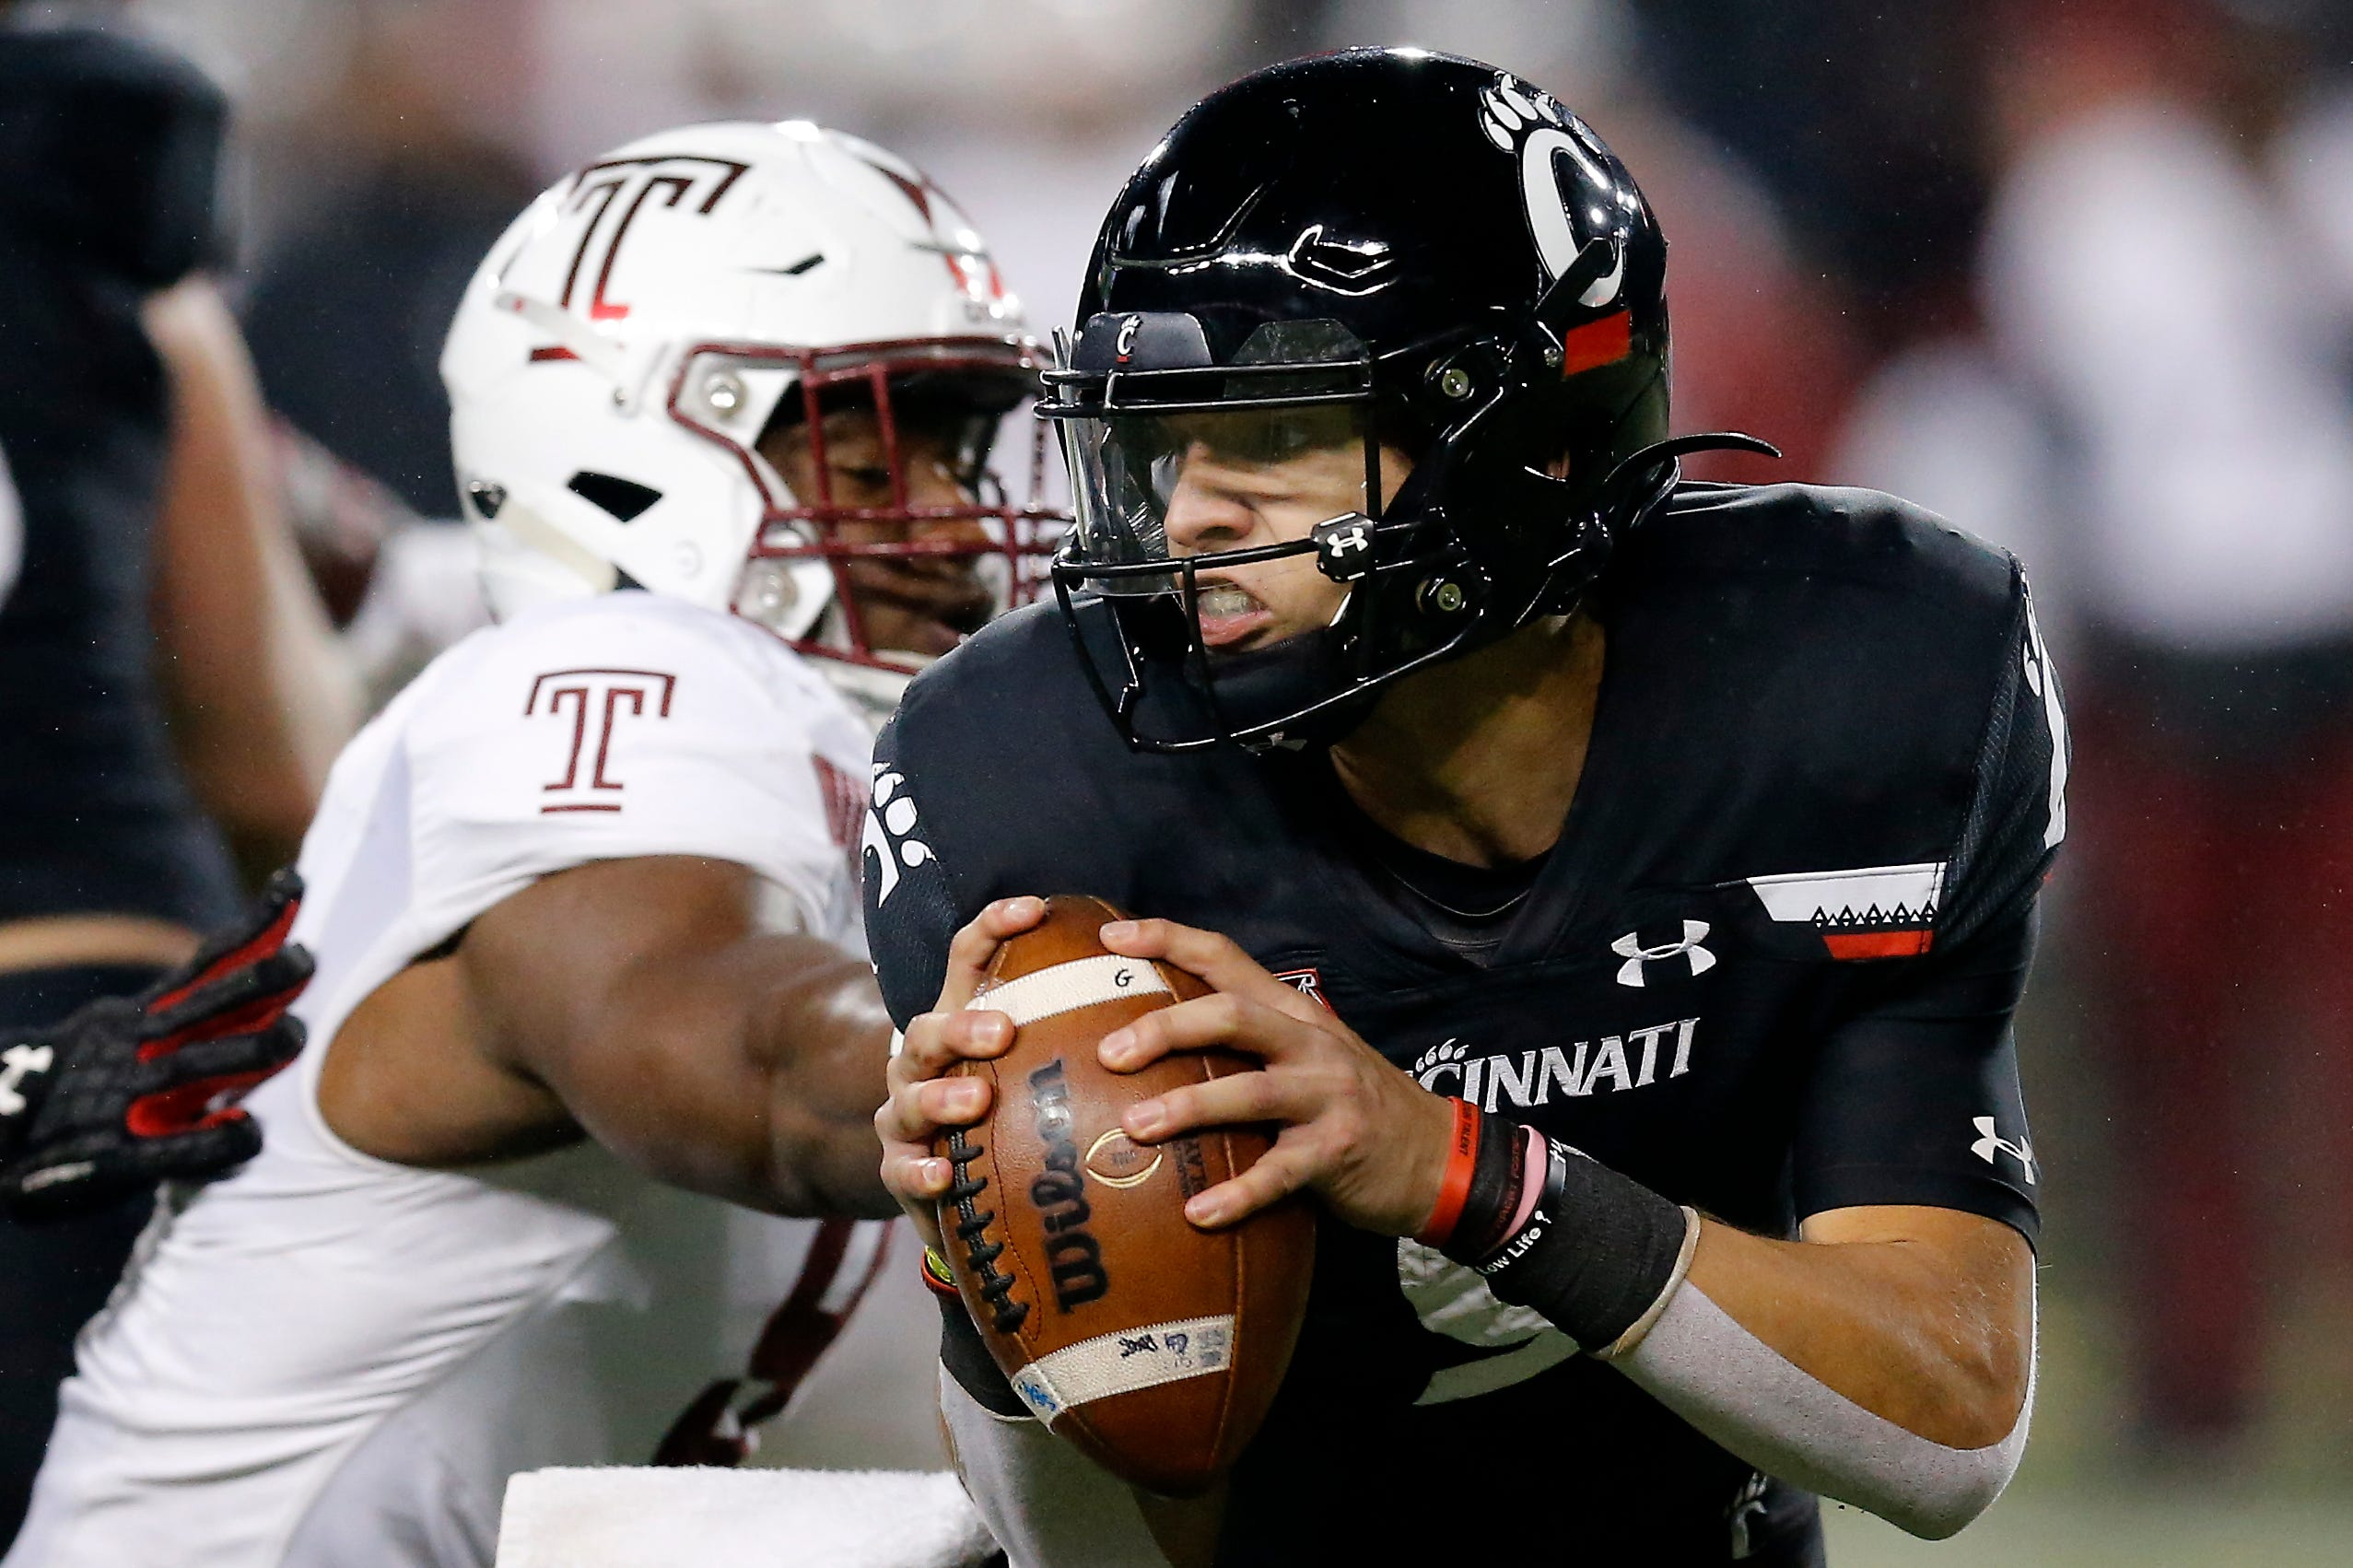 Scouting report: A look at the Temple Owls, the next opponent for No. 5/6 Cincinnati